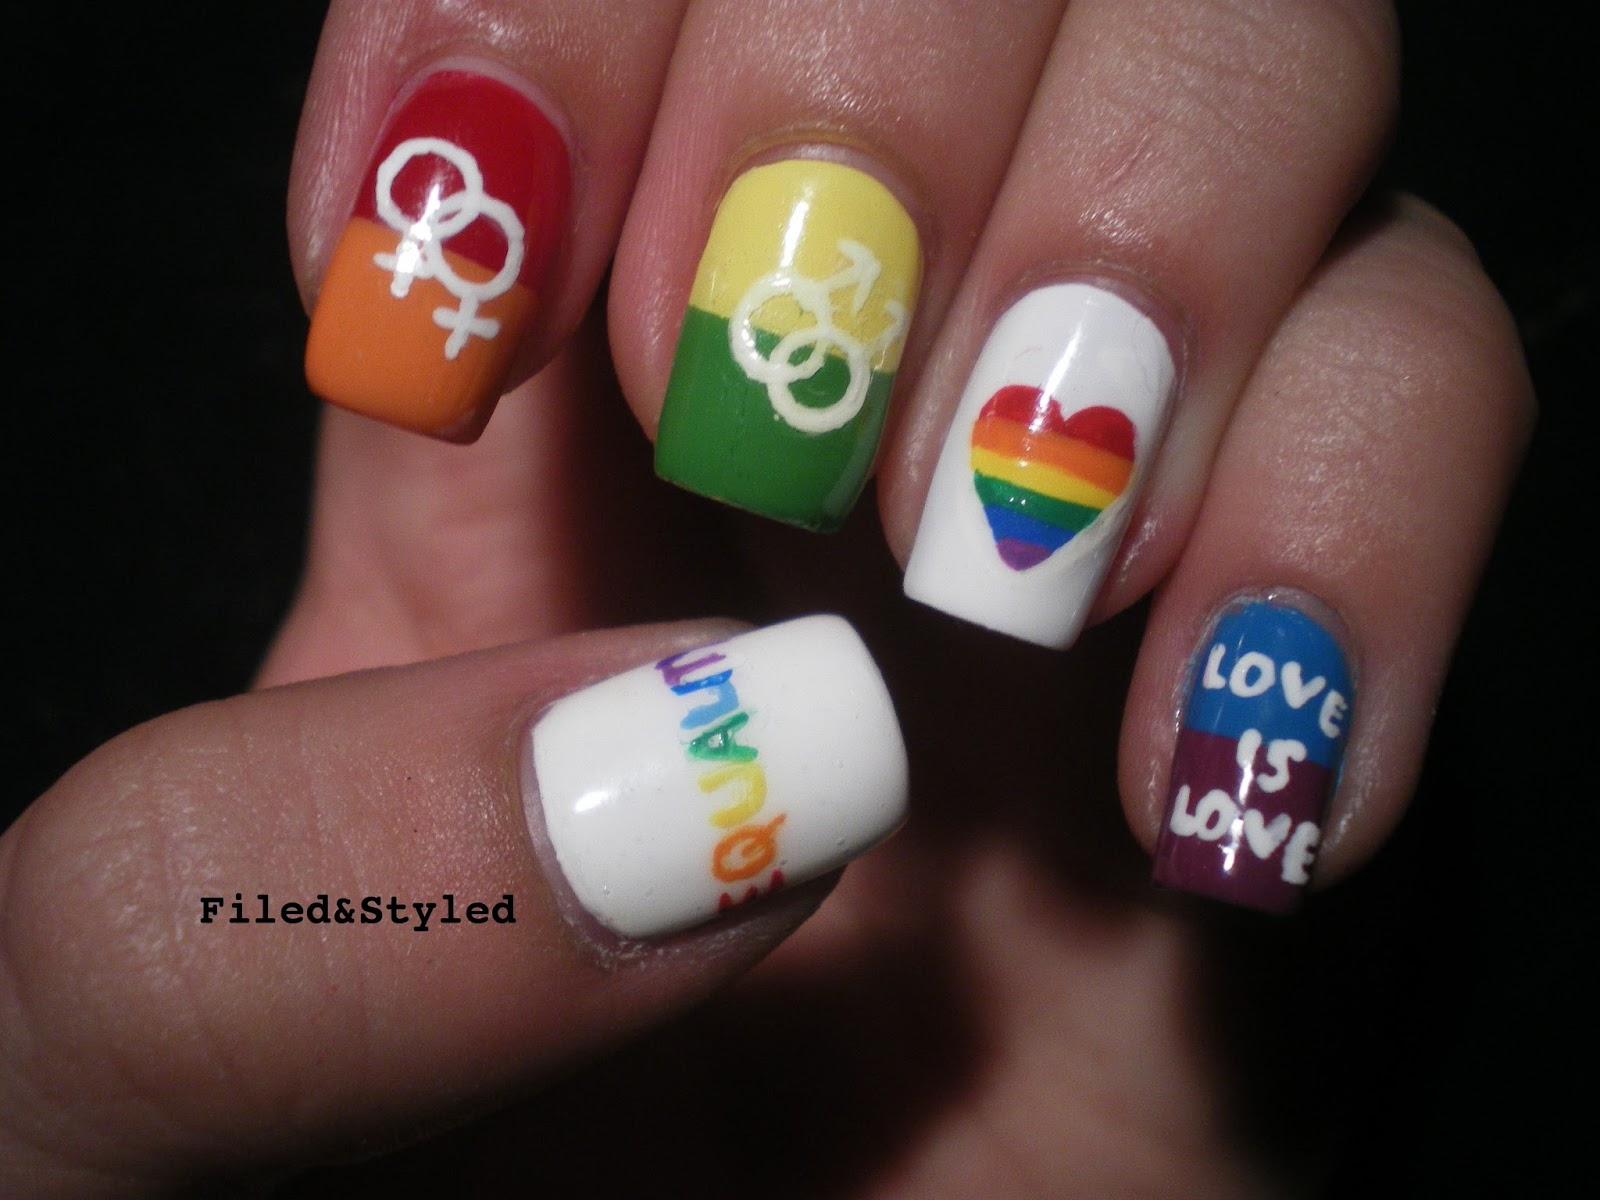 31dc2013 Rainbow Nails | Filed & Styled Filed & Styled: 31dc2013 ...